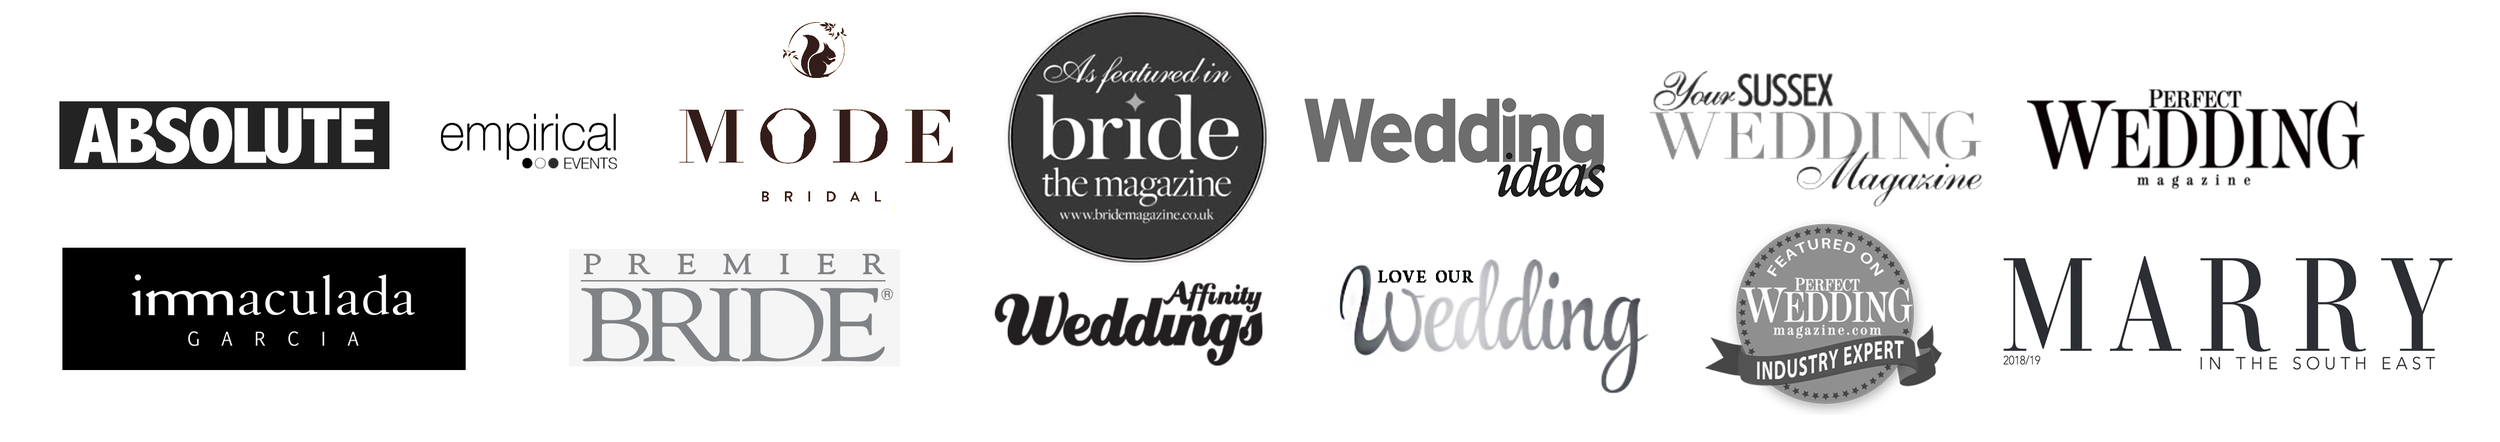 Magazine Logos ALL.png